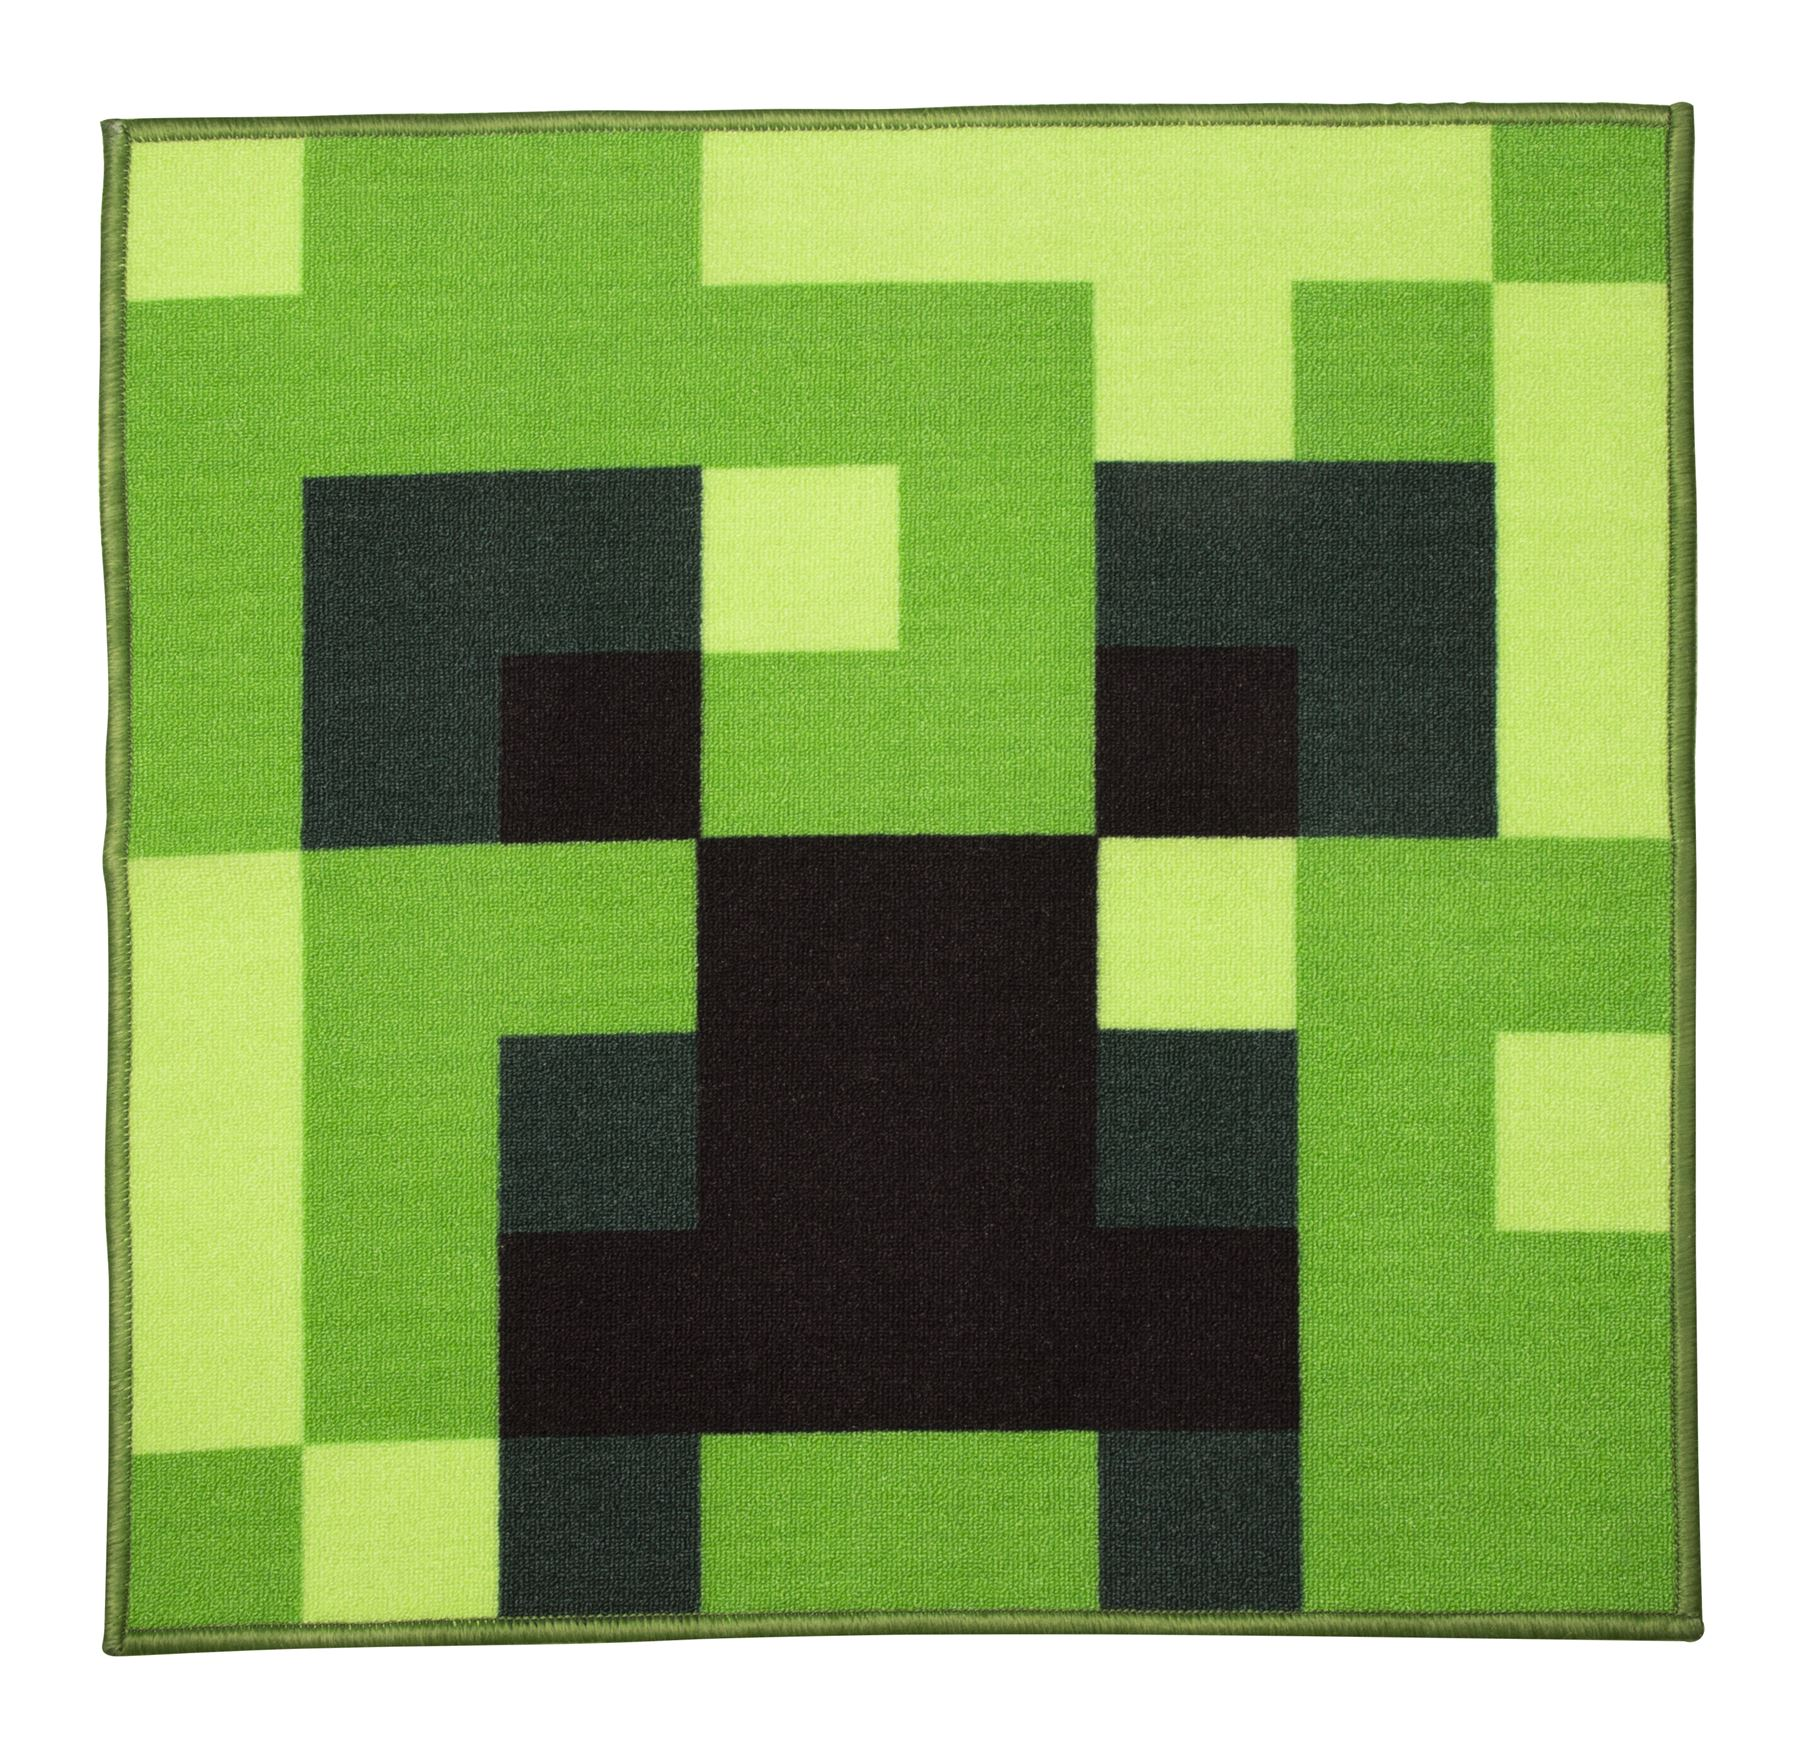 Official-Licensed-Character-Shaped-Rug-Boys-Girls-Matches-Bedding-Rugs-Minecraft thumbnail 9